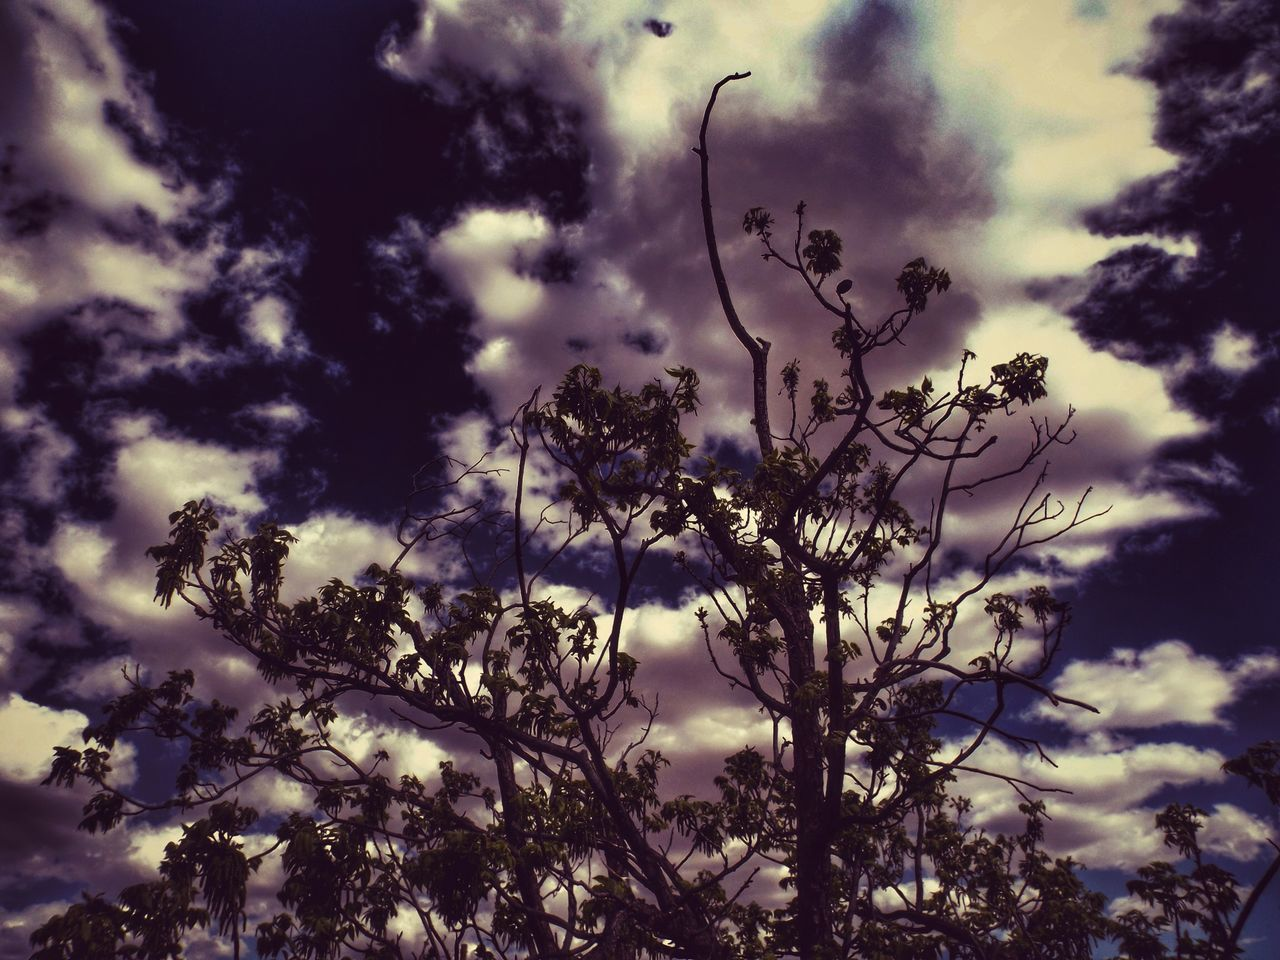 sky, tree, nature, low angle view, cloud - sky, beauty in nature, outdoors, silhouette, no people, branch, day, growth, bird, animal themes